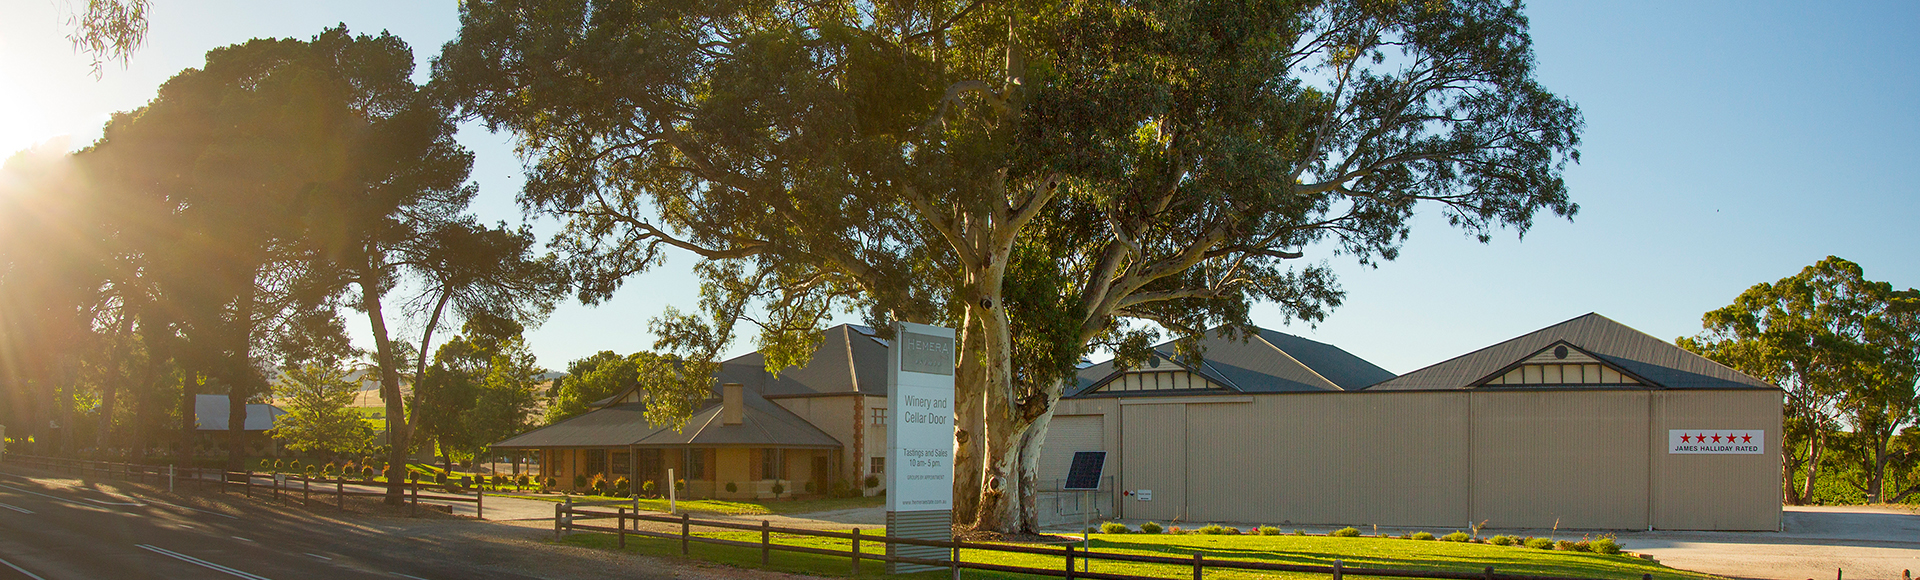 hemera-estate-winery-lyndoch-south-australia